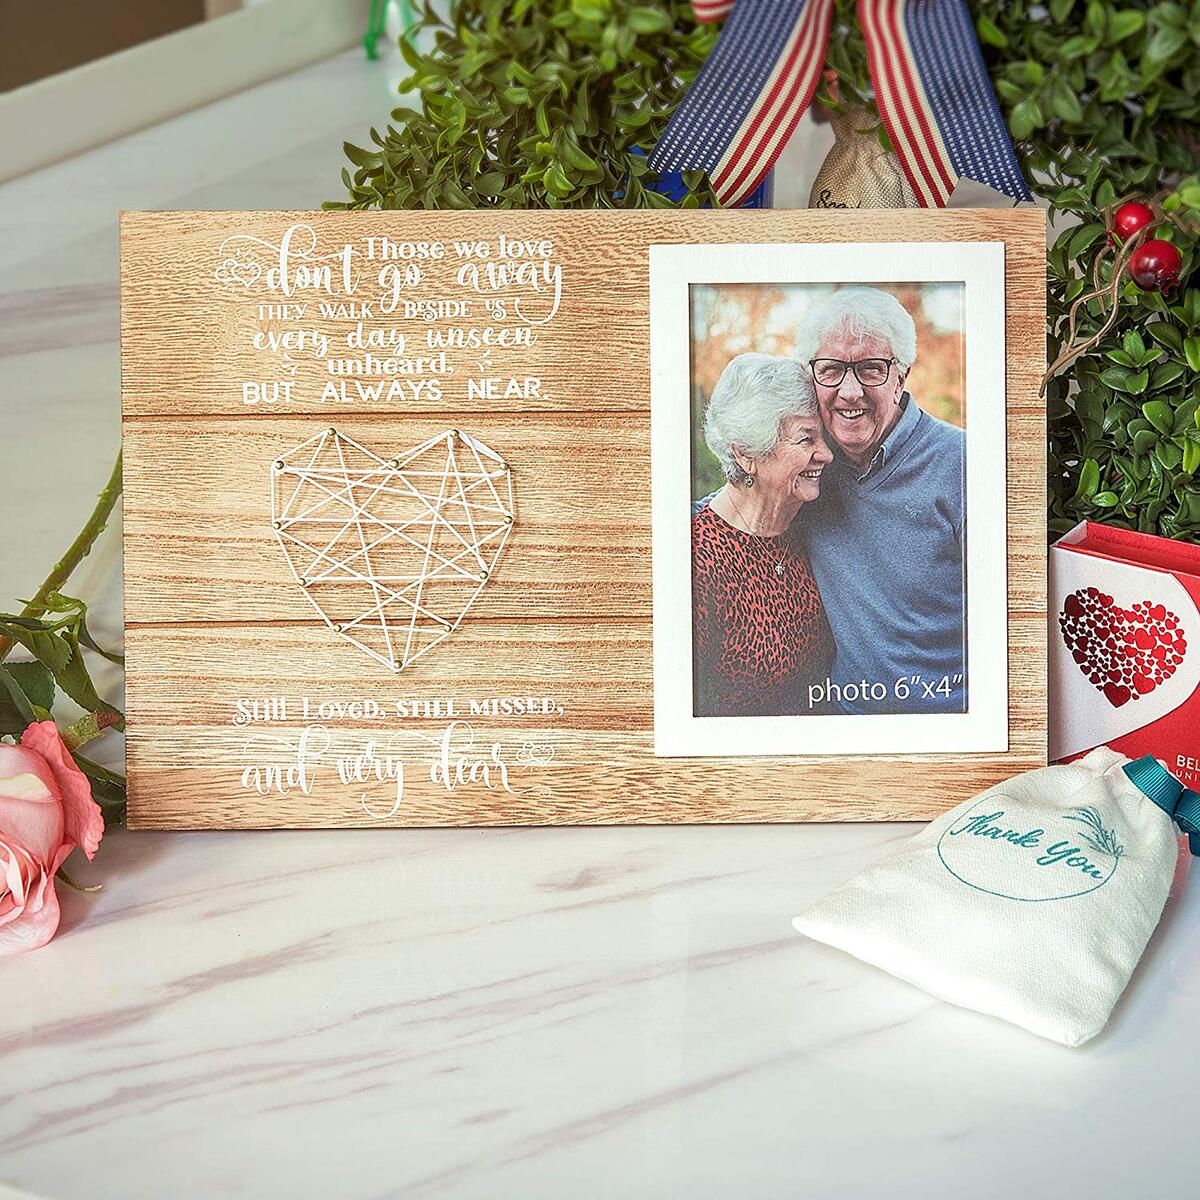 Hendson Memorial Gifts Picture Frame - Remembrance Bereavement and Sympathy Gift - in Loving Memory of Mother, Father, Grandma, Grandpa - Photo Frame for Loss of Loved One - Fits 4x6 Inches Photo